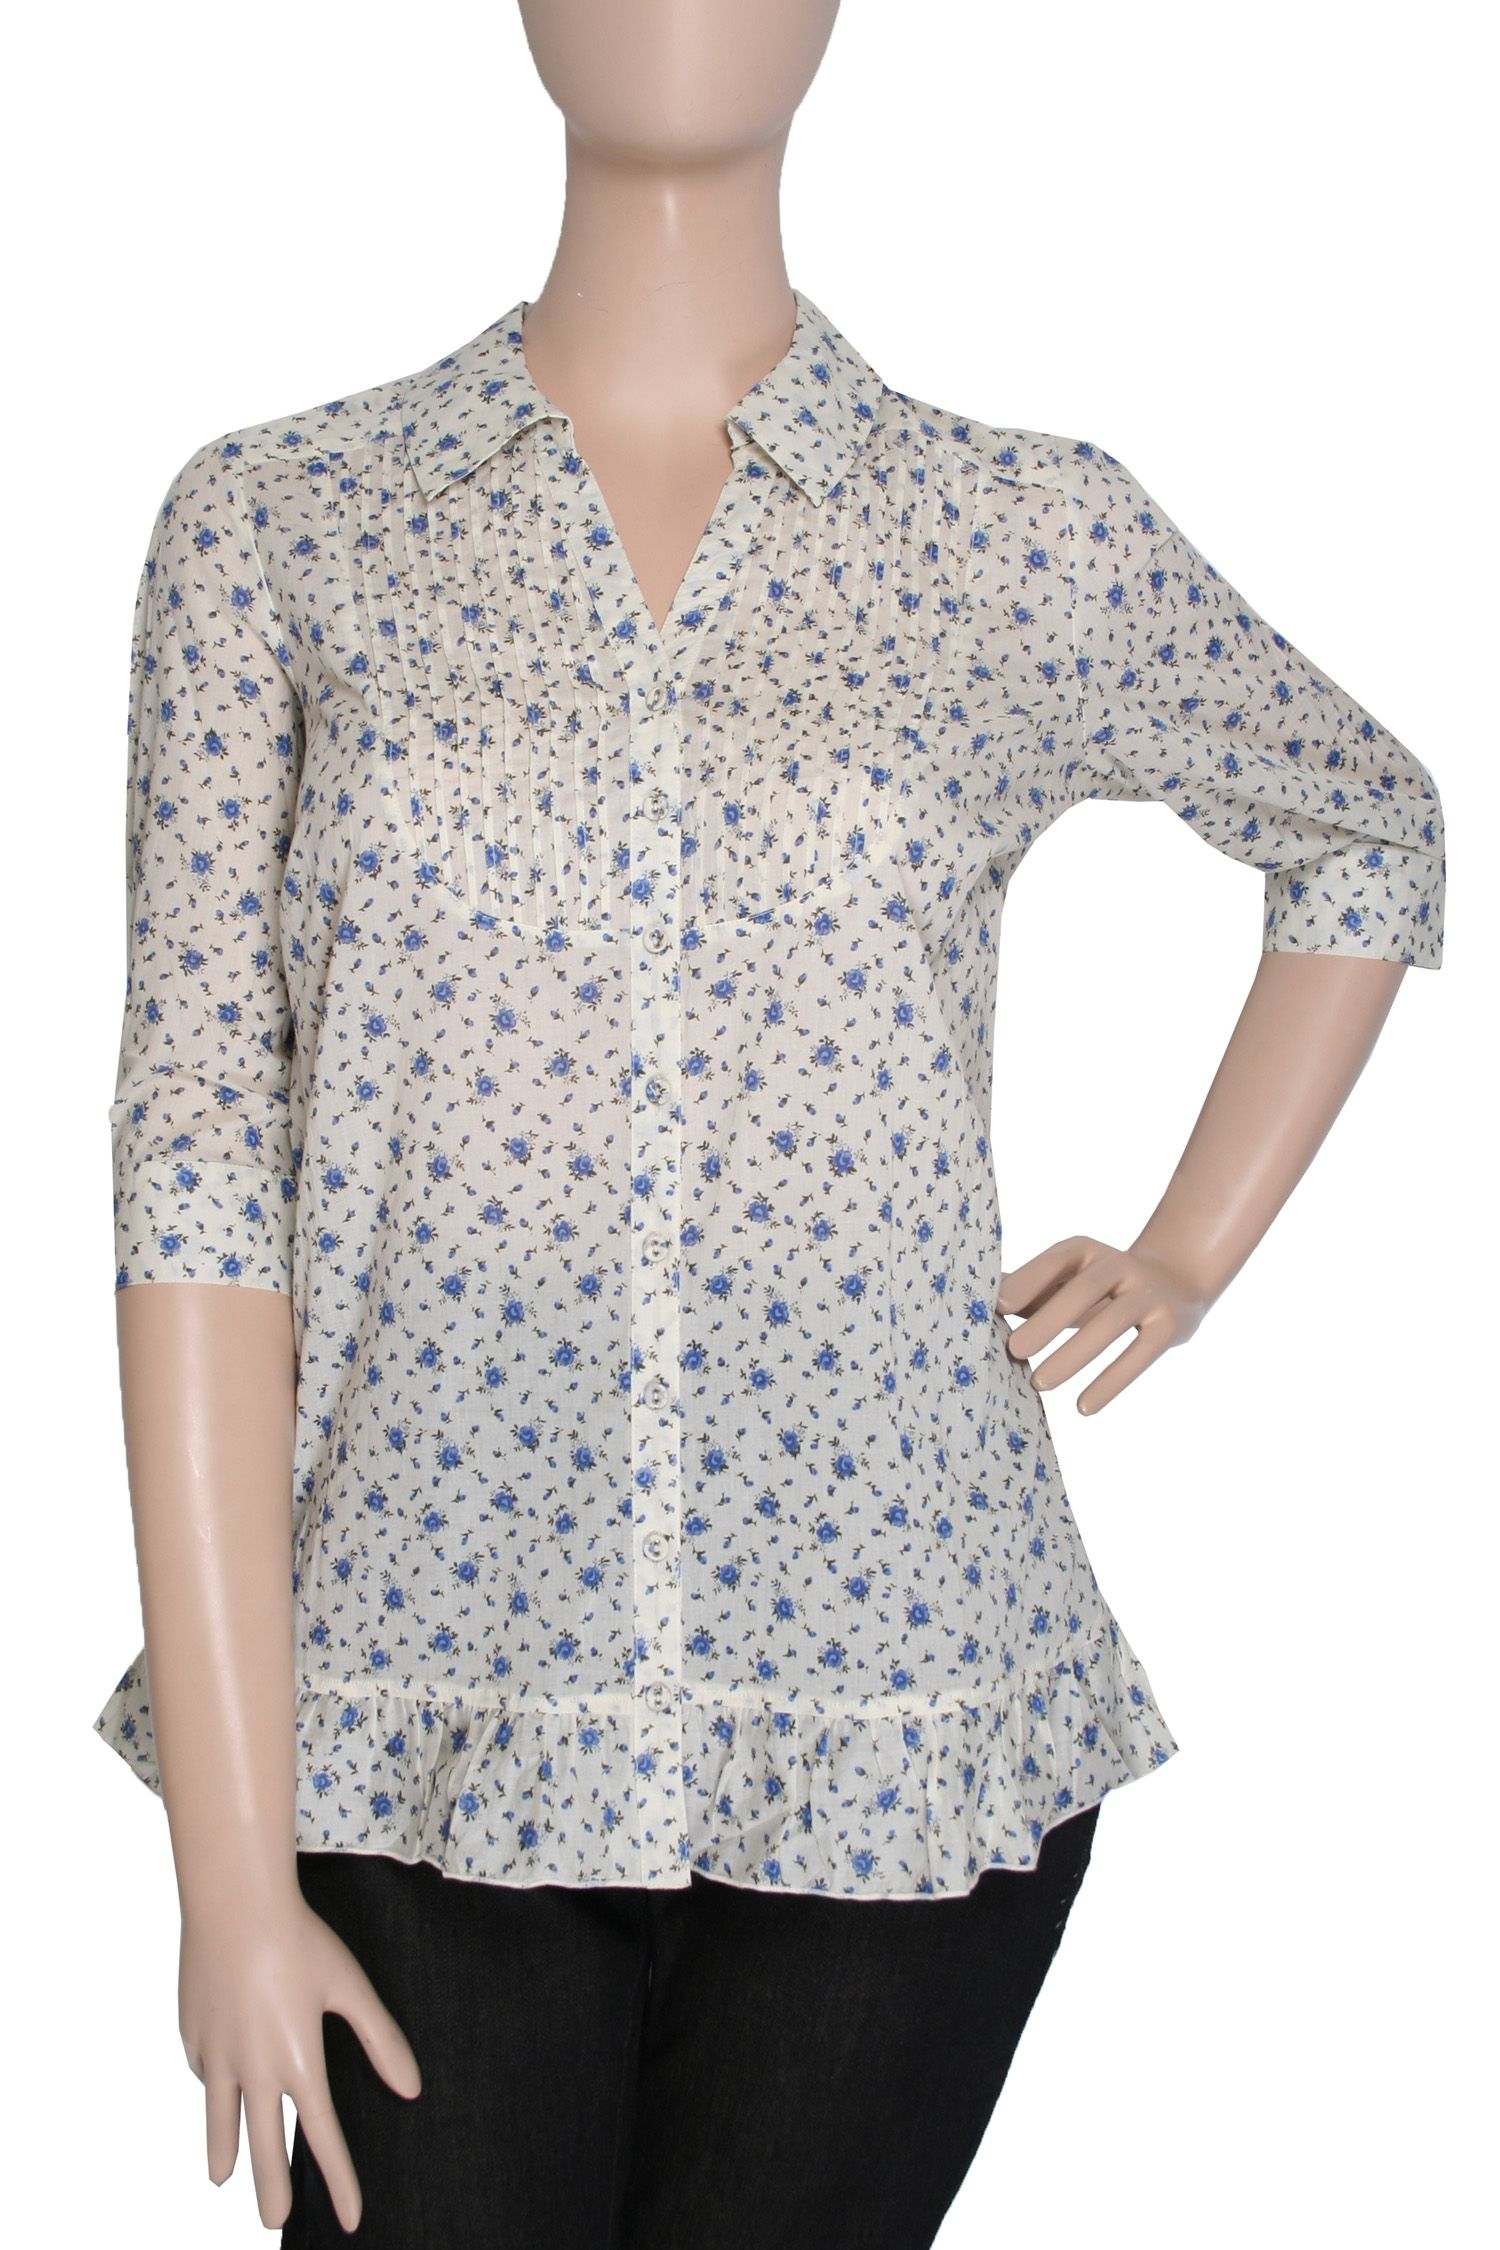 Ann Harvey Ditsy print blouse - Cream 30,30 product image